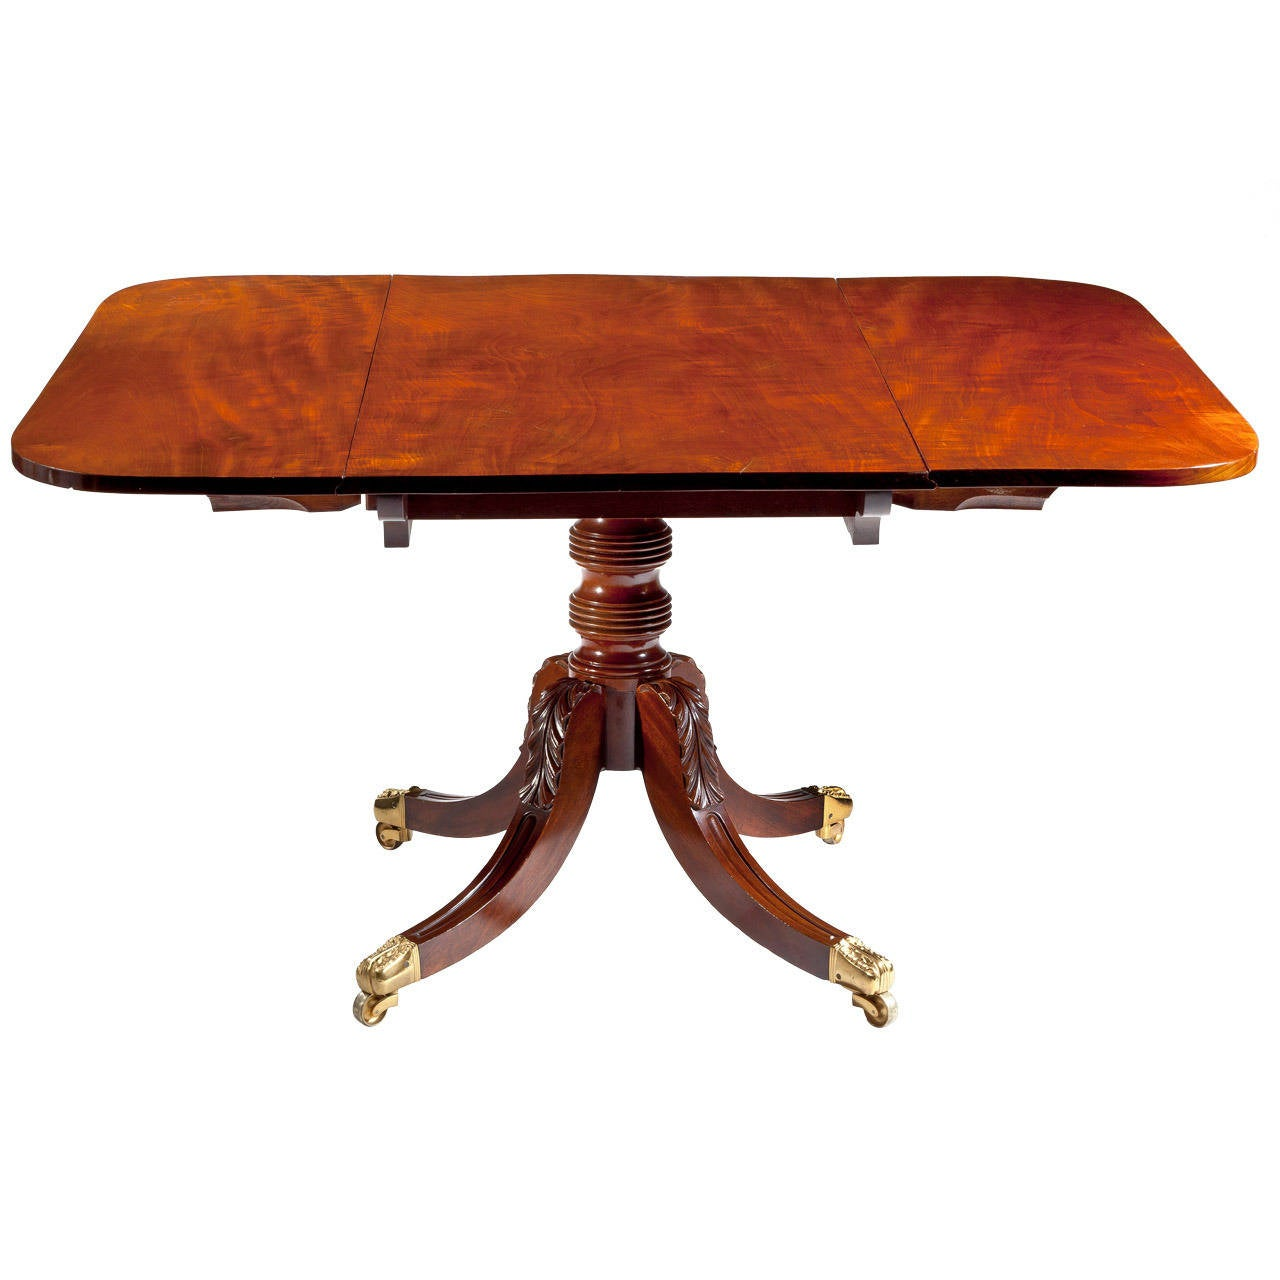 Sheraton Carved Mahogany Drop-Leaf Dining Table, circa 1820